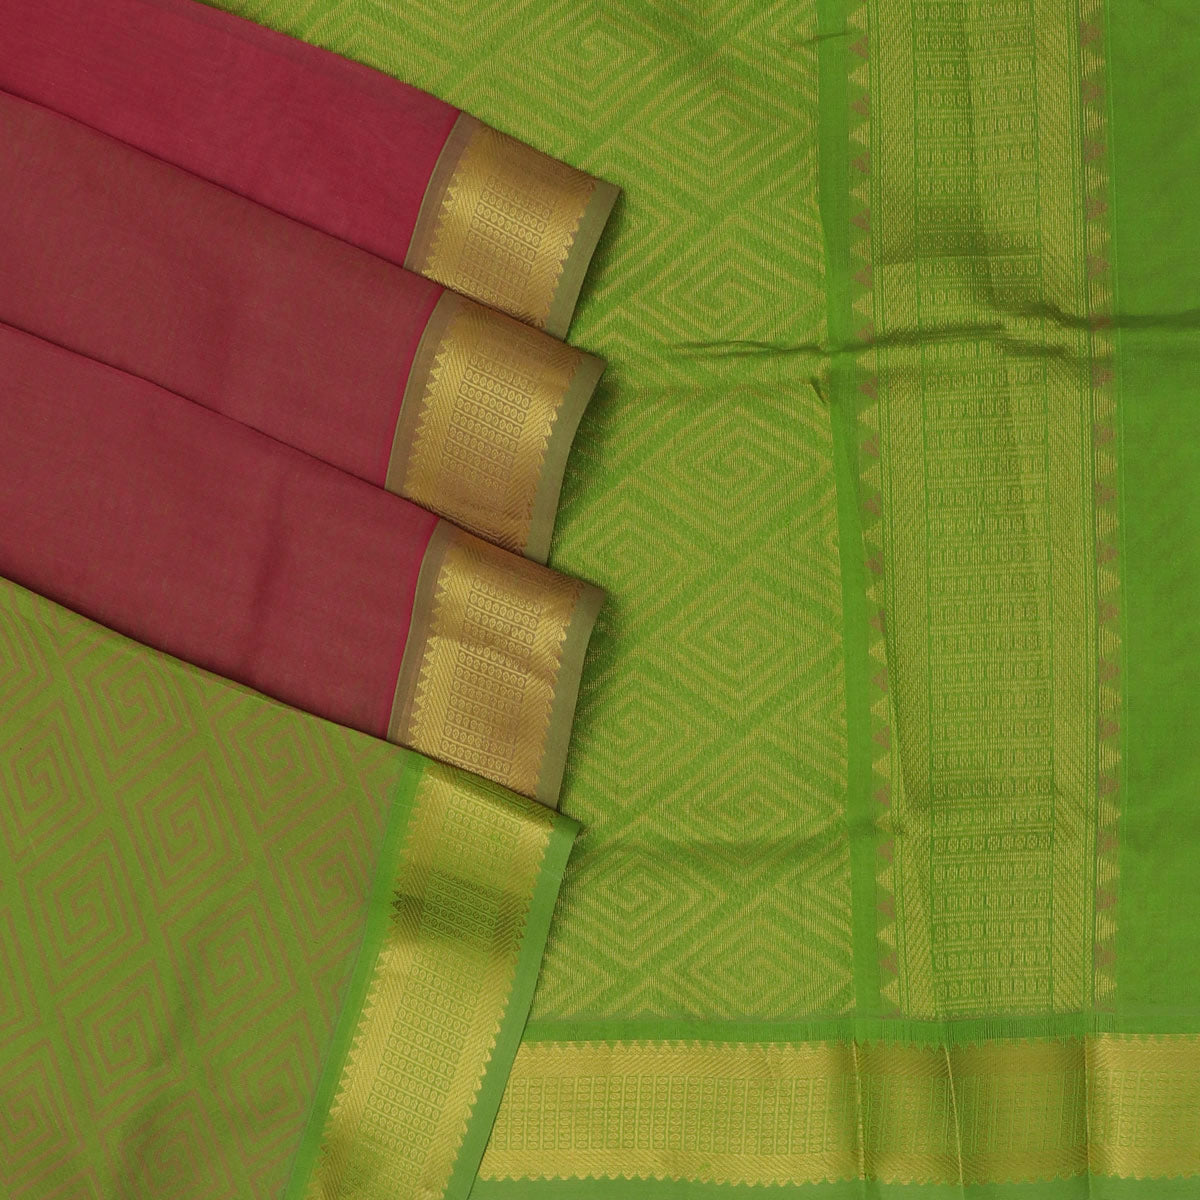 Silk Cotton Saree - Onion Pink and Green with Temple zari border partly